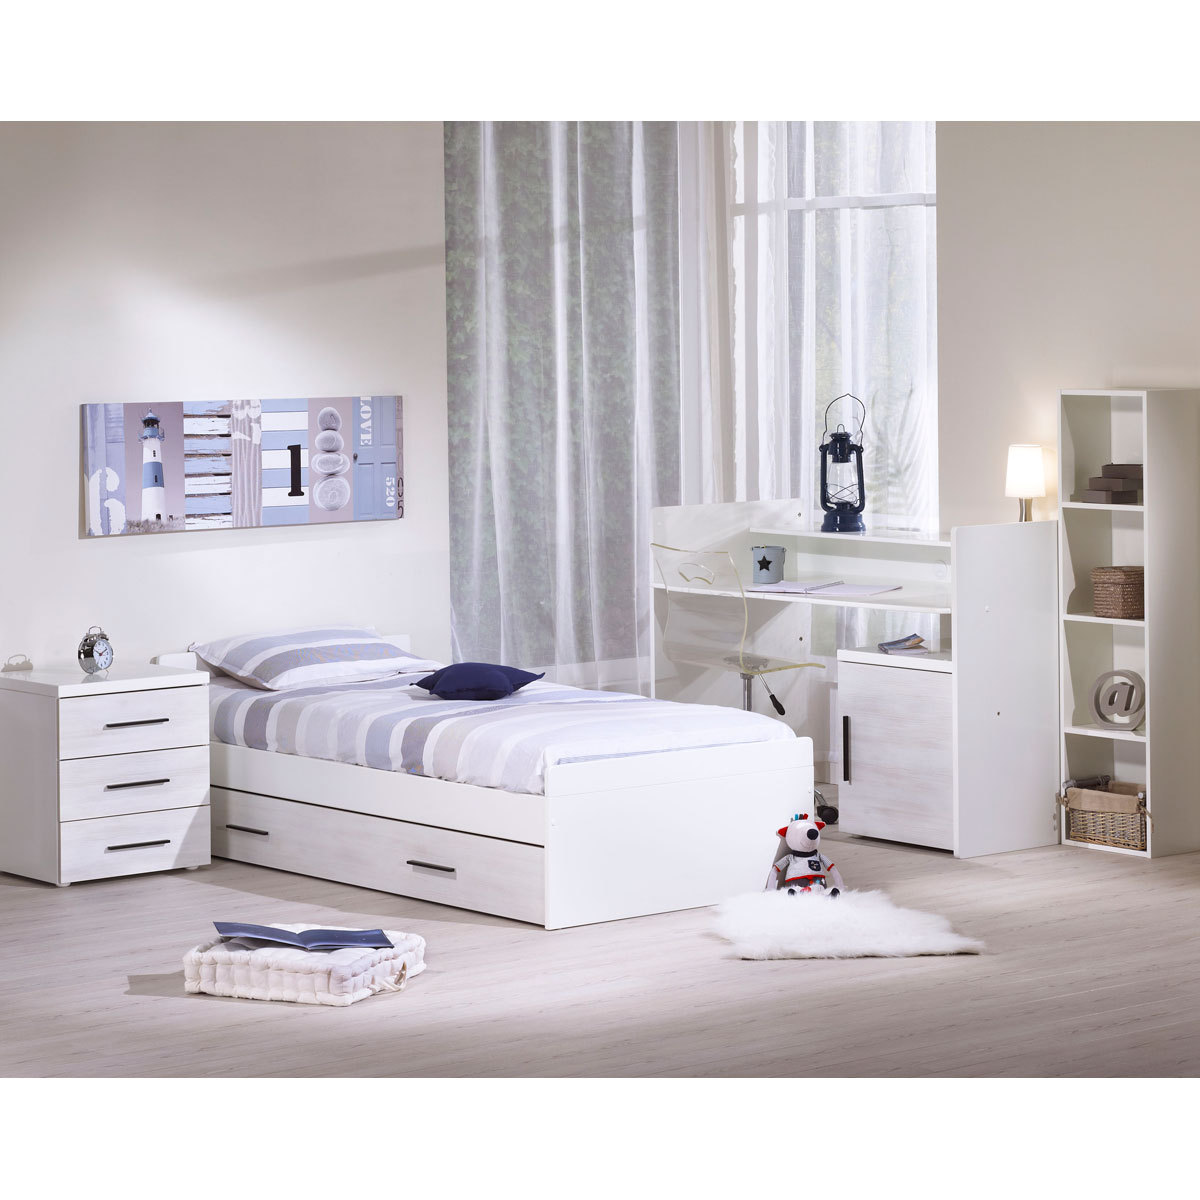 sauthon lit combin evolutif zen rivage lit b b sauthon sur l 39 armoire de b b. Black Bedroom Furniture Sets. Home Design Ideas